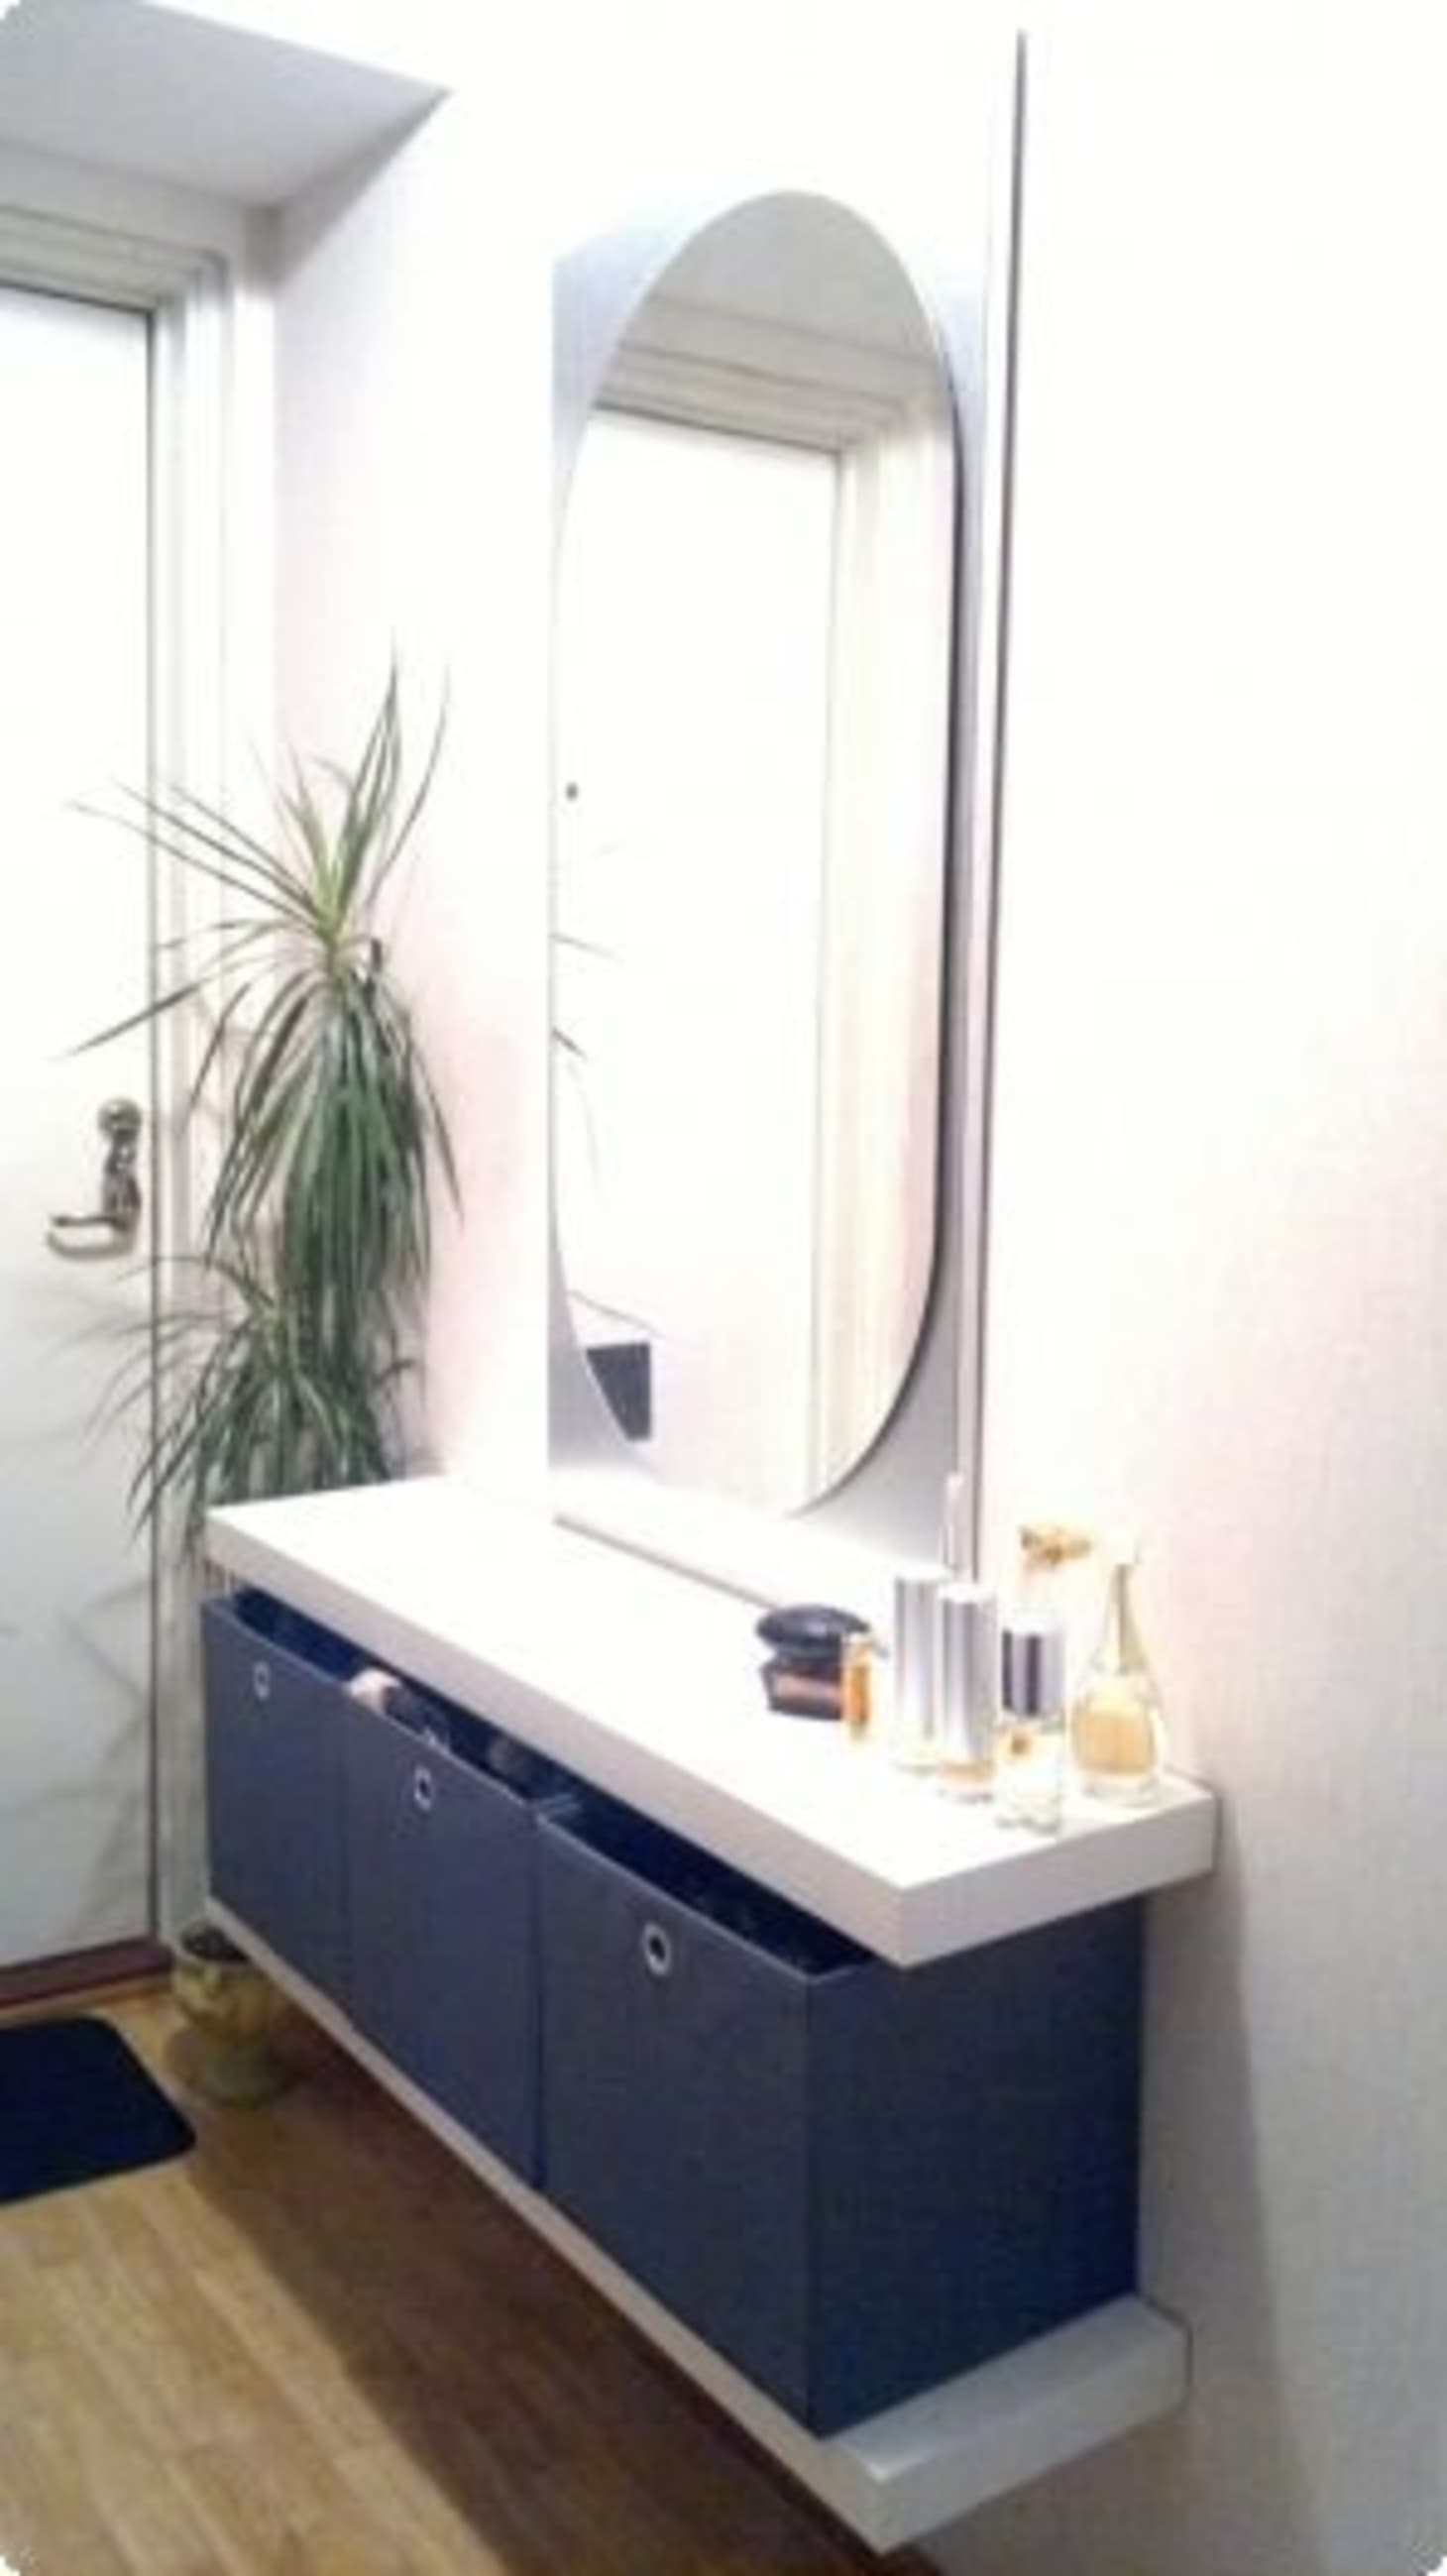 Ikea Hacks Lack Shelves For Storage Apartment Therapy